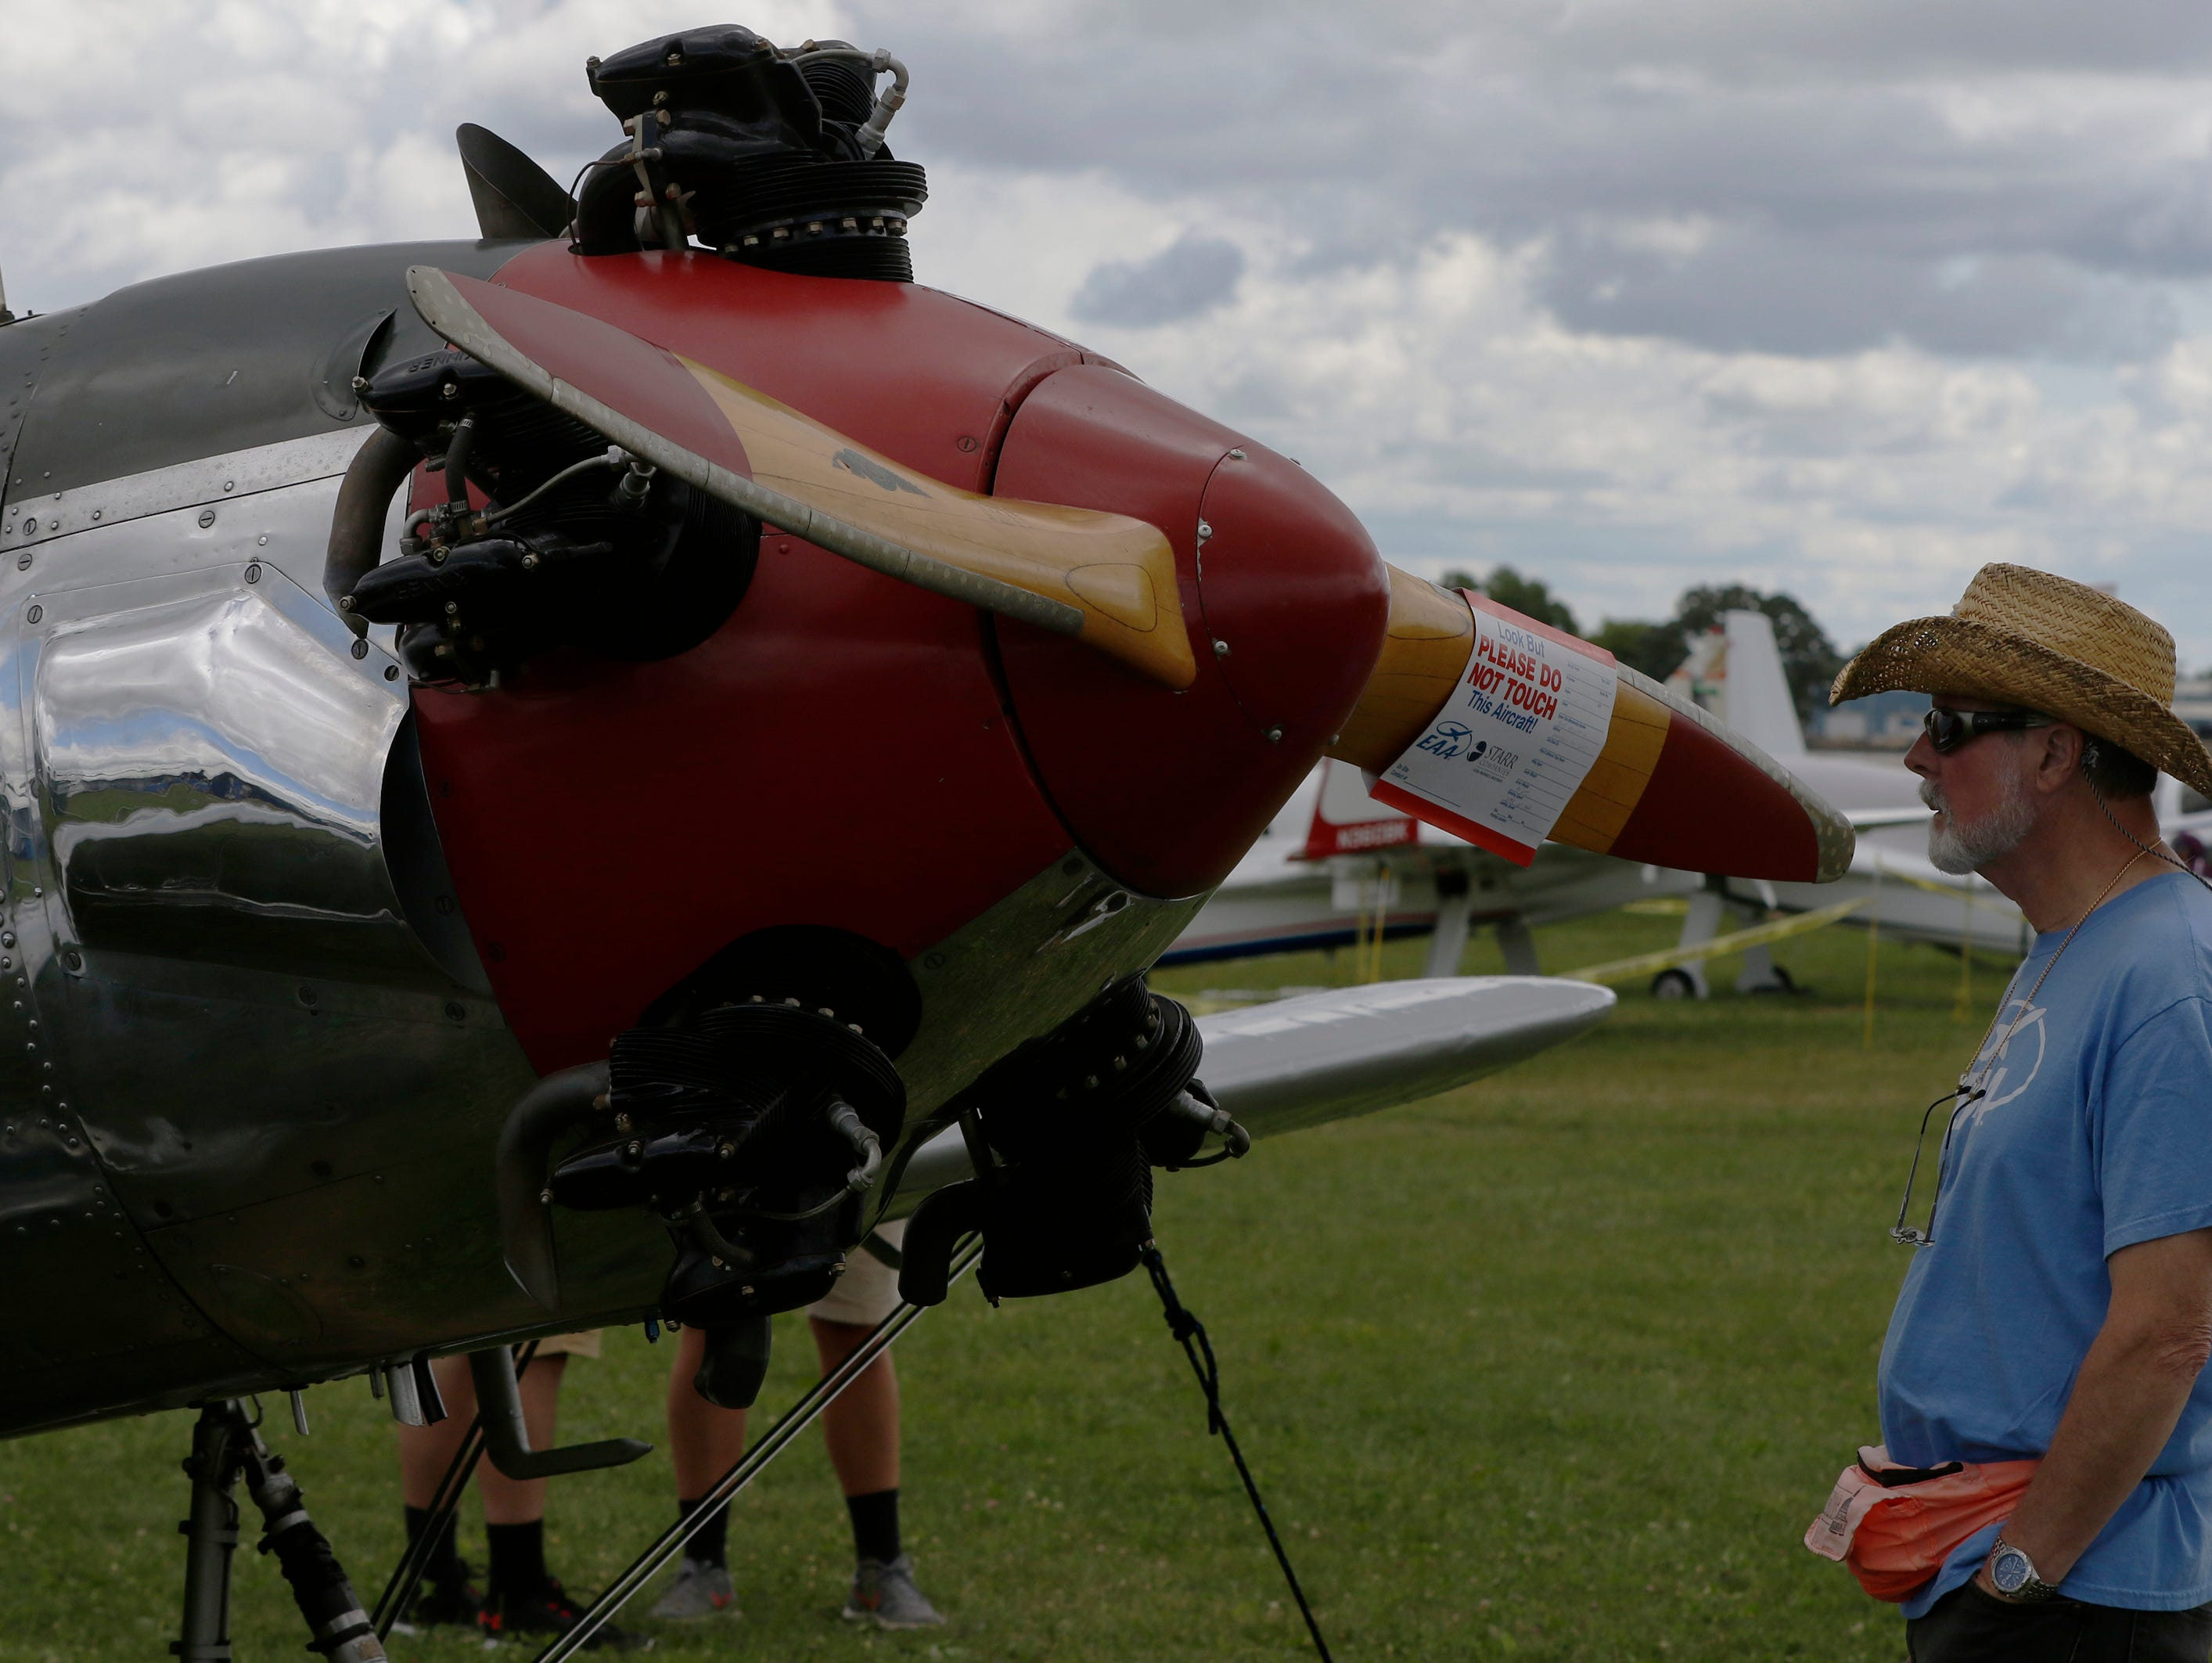 Wayne Seyller of Bartlett, Ill., looks over the 1947 Ryan PT-22, Thursday, July 26, 2018, in Oshkosh, Wis.  The 66th annual Experimental Aircraft Association Fly-In Convention, AirVenture 2018 draws over 500,000 people and over 10,000 planes from more than 70 nations annually to the area.  The convention runs through July 29.Joe Sienkiewicz/USA Today NETWORK-Wisconsin